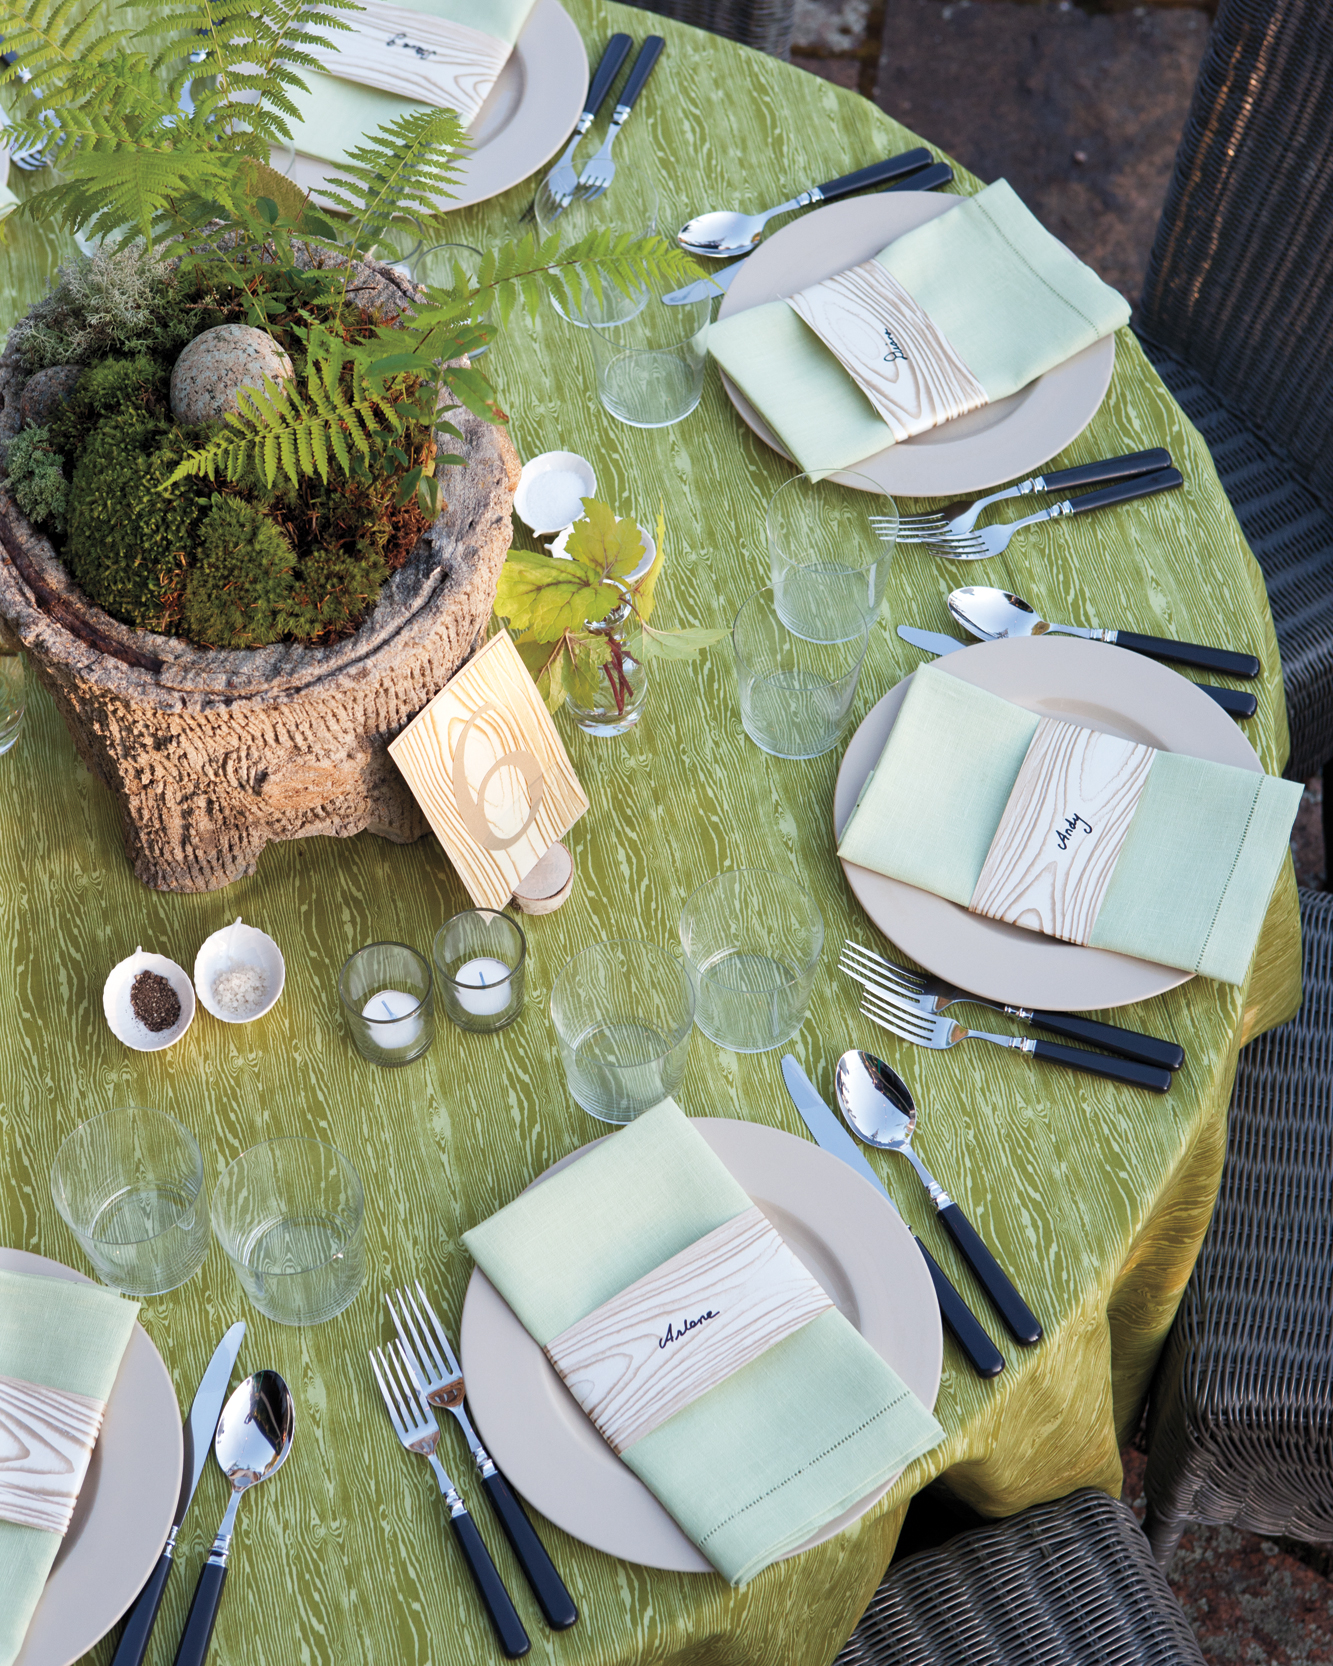 maine-event-table-setting-mld107757.jpg